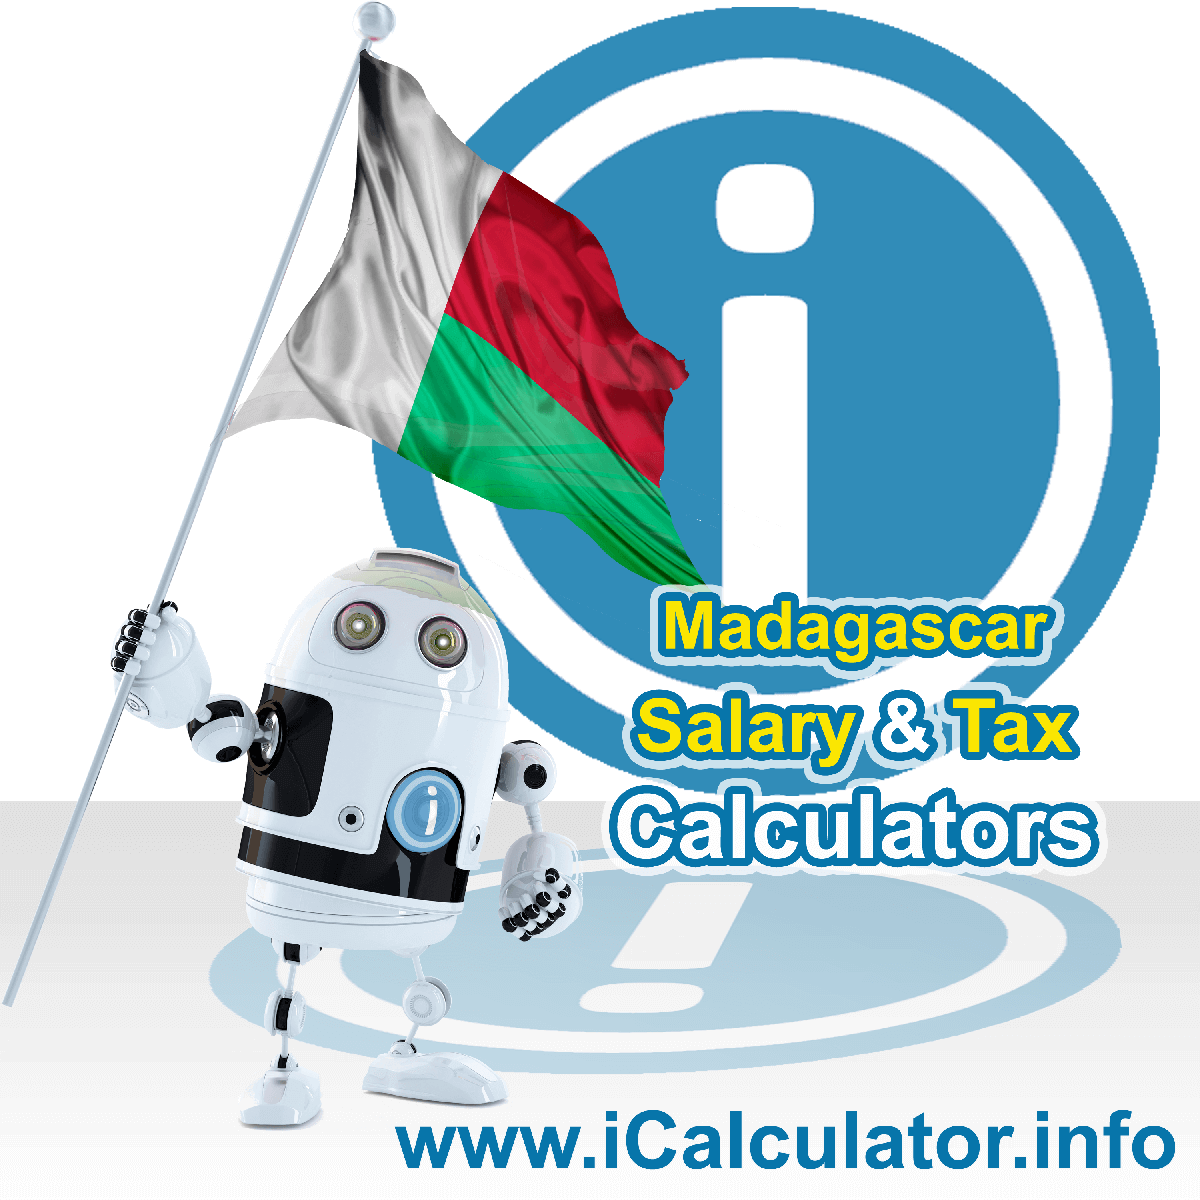 Madagascar Salary Calculator. This image shows the Madagascarese flag and information relating to the tax formula for the Madagascar Tax Calculator